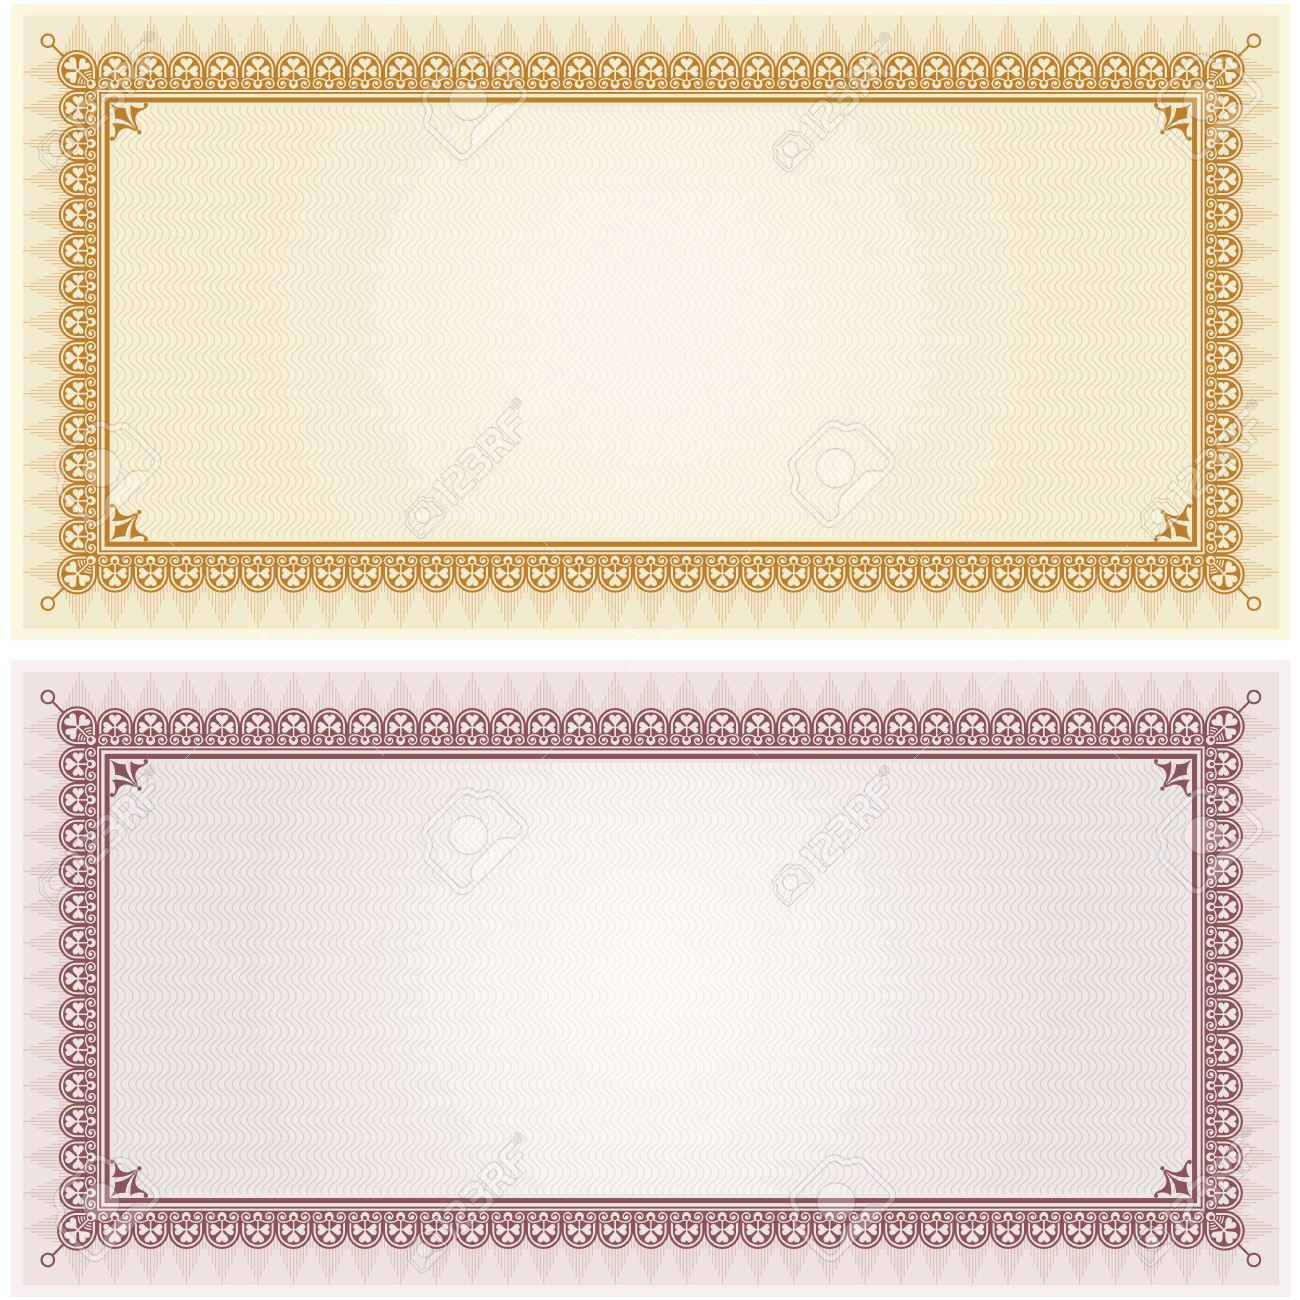 Blank certificate border templates pasoevolist blank certificate border templates yelopaper Image collections